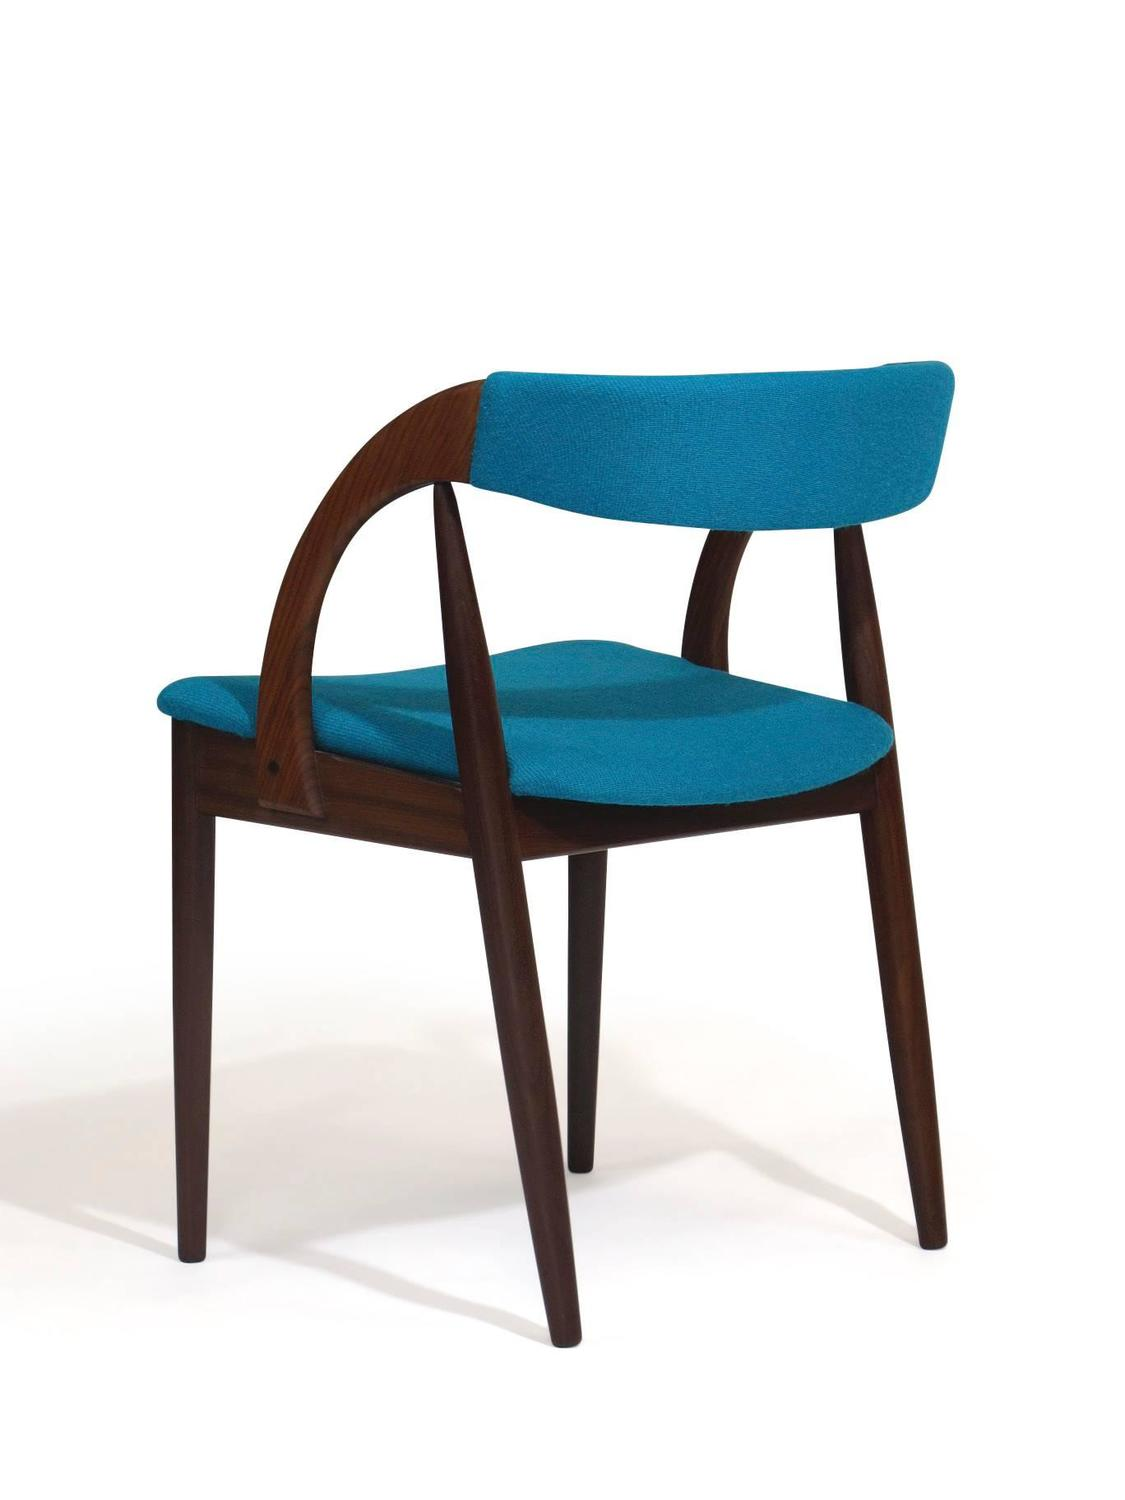 Turquoise dining room chairs seekingdecor circle circle dot dot a closer look at six - Turquoise upholstered dining chair ...